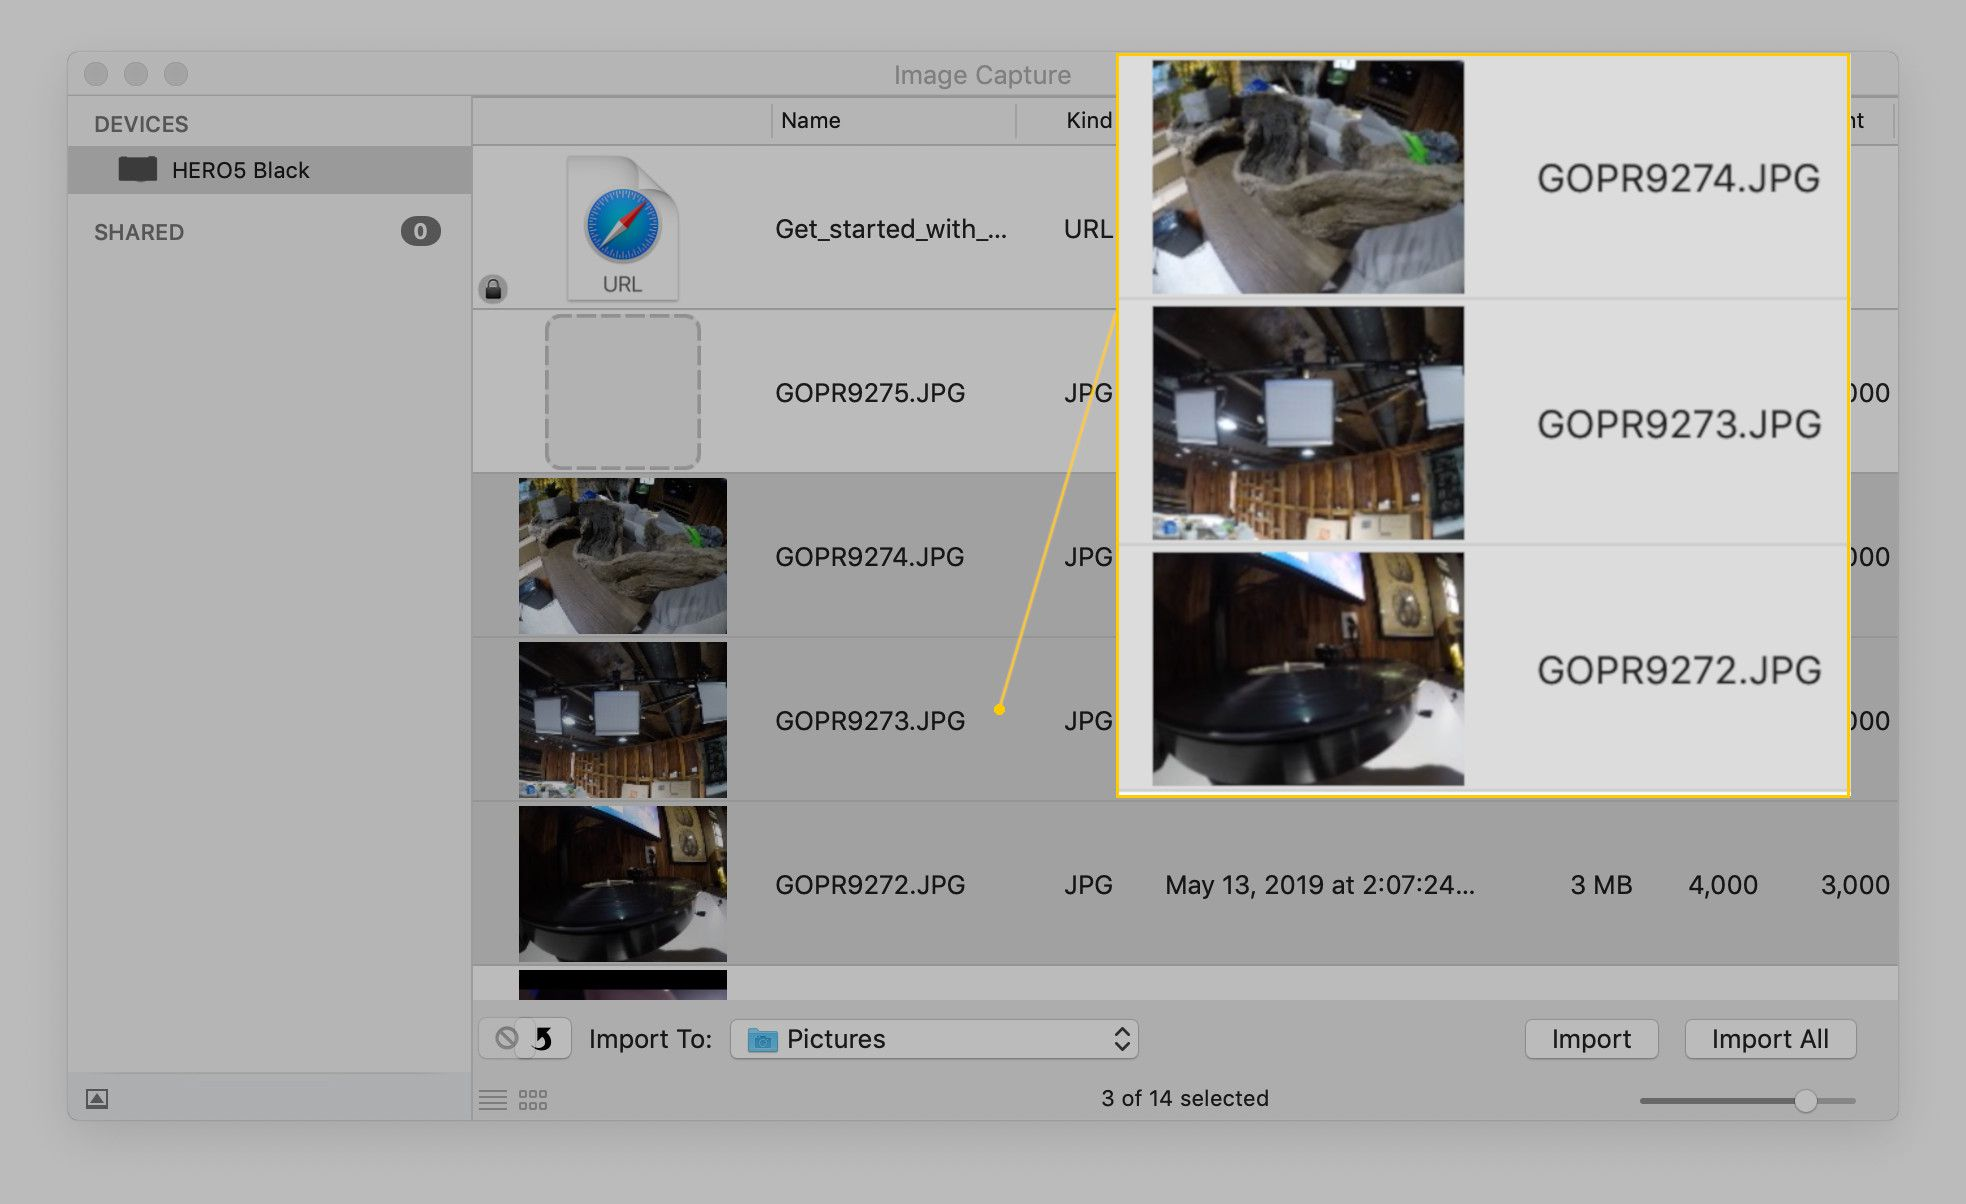 Screenshot of multiple selected images in Image Capture.